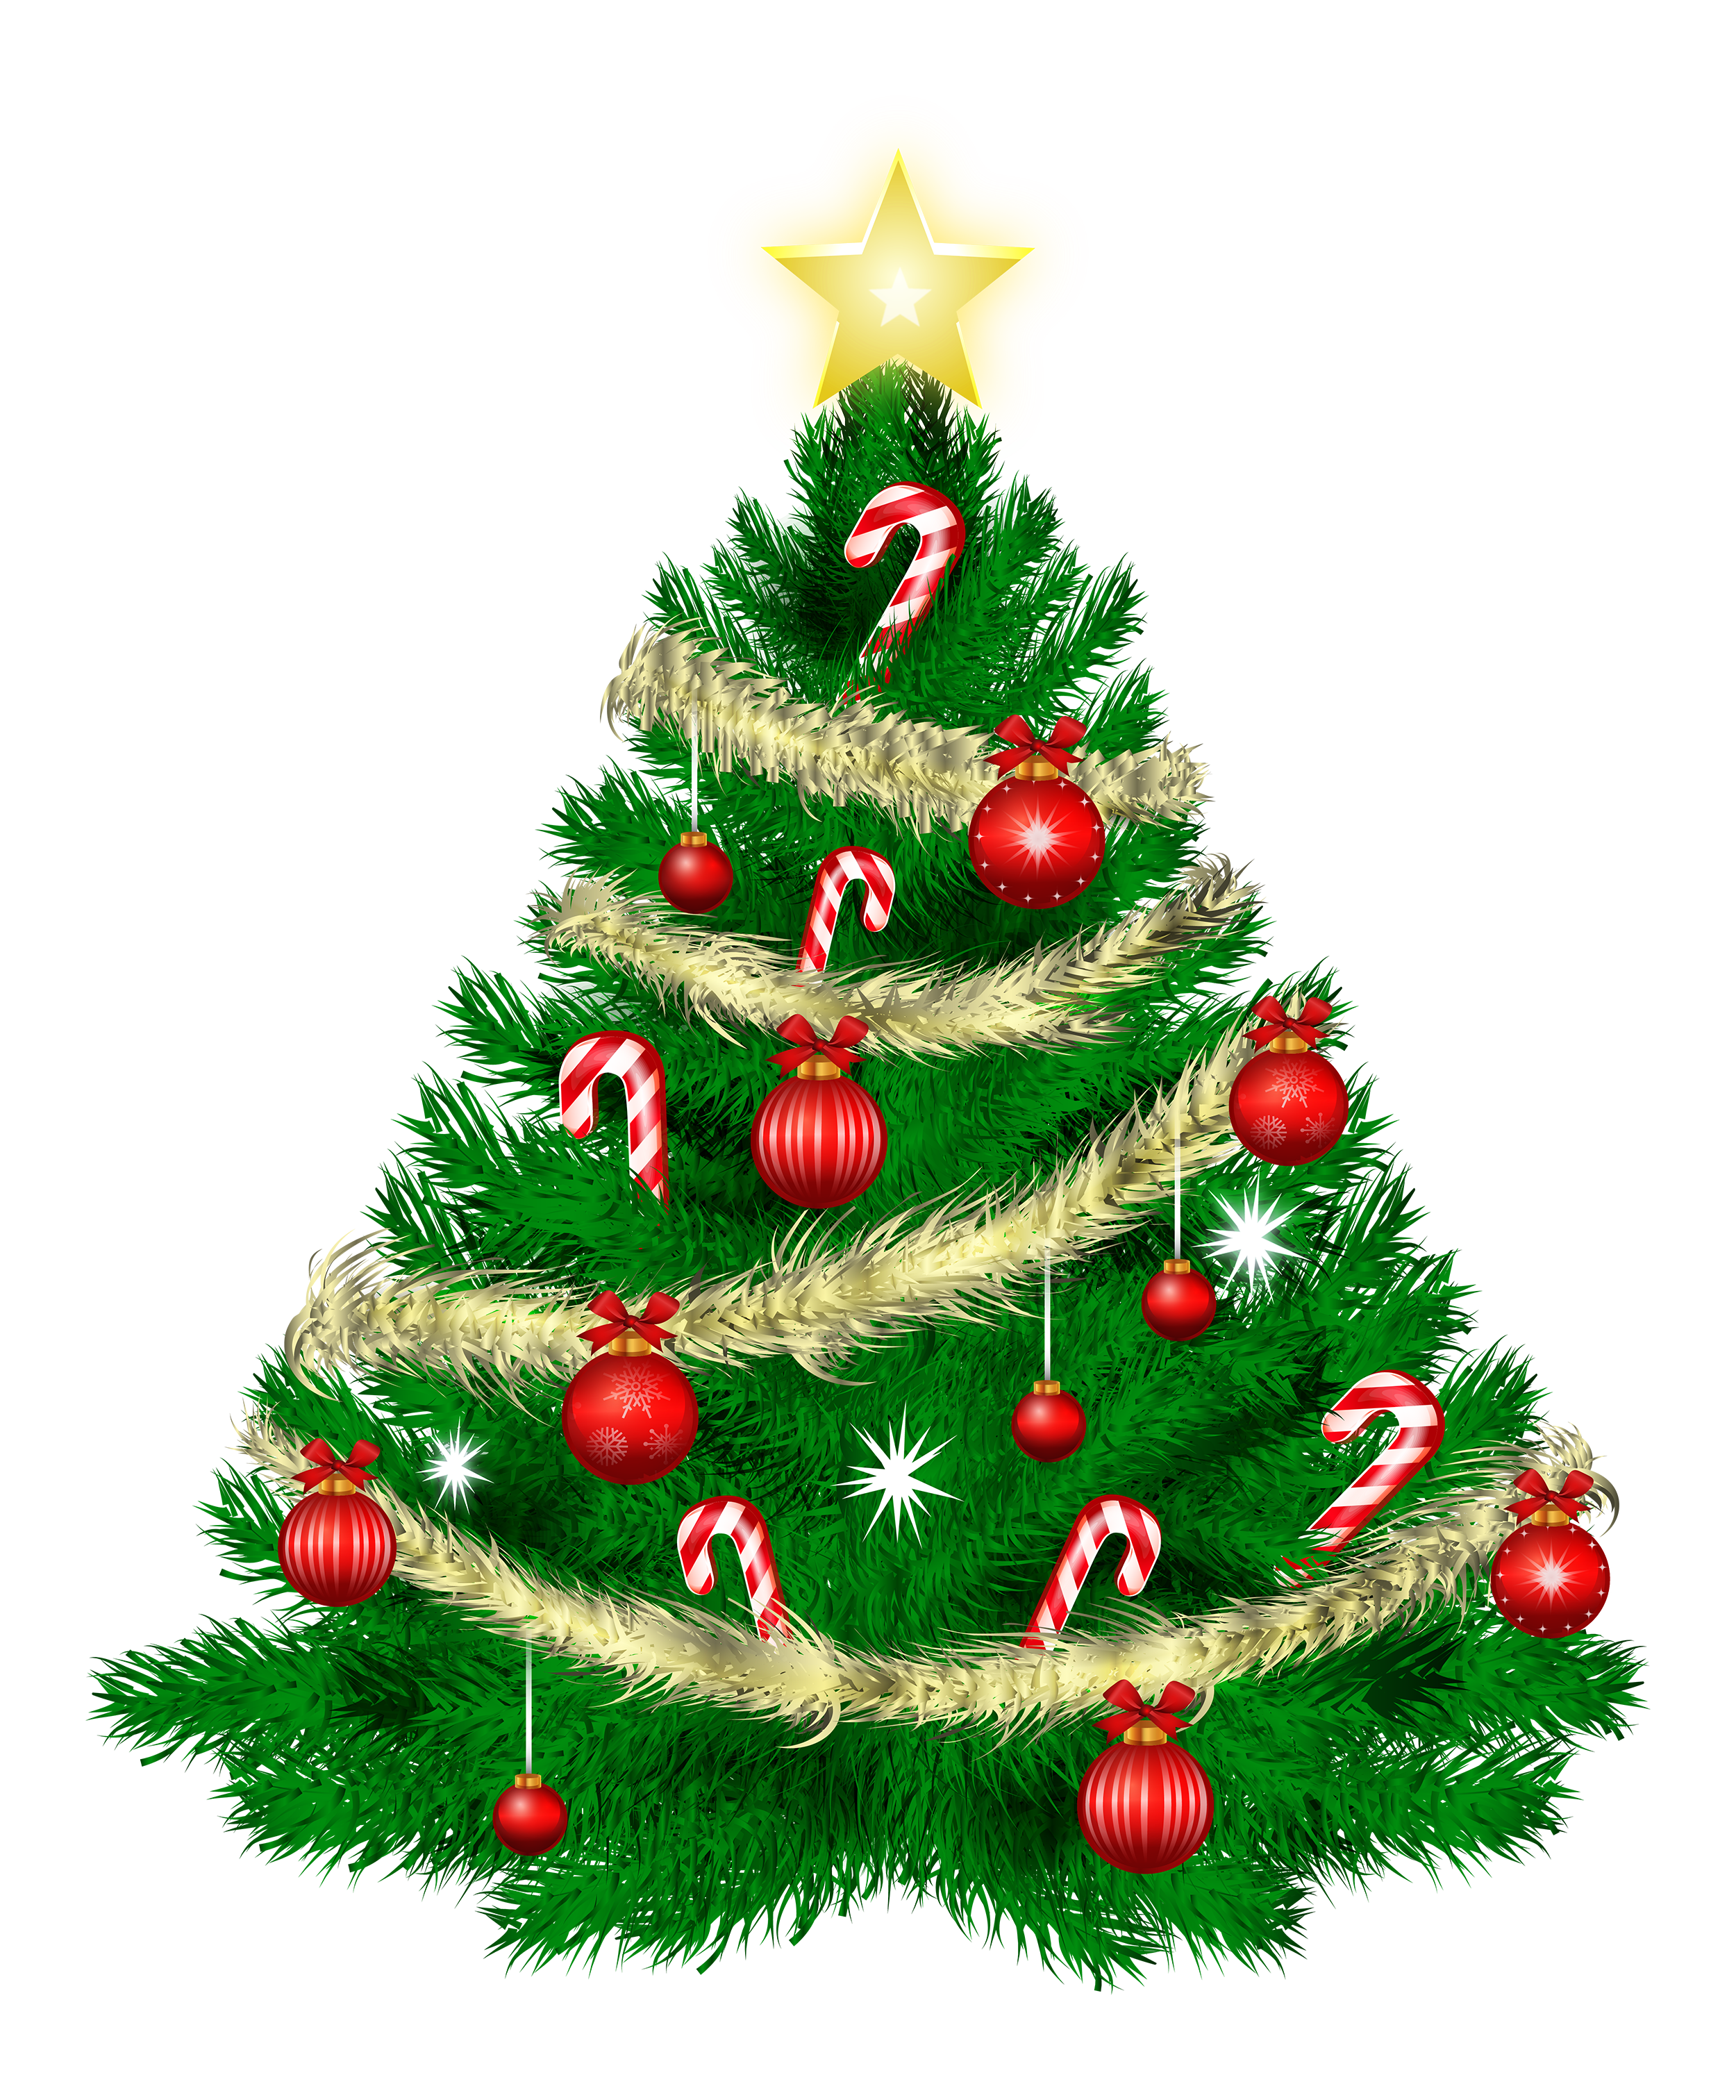 Tree with ornaments and. Png christmas images